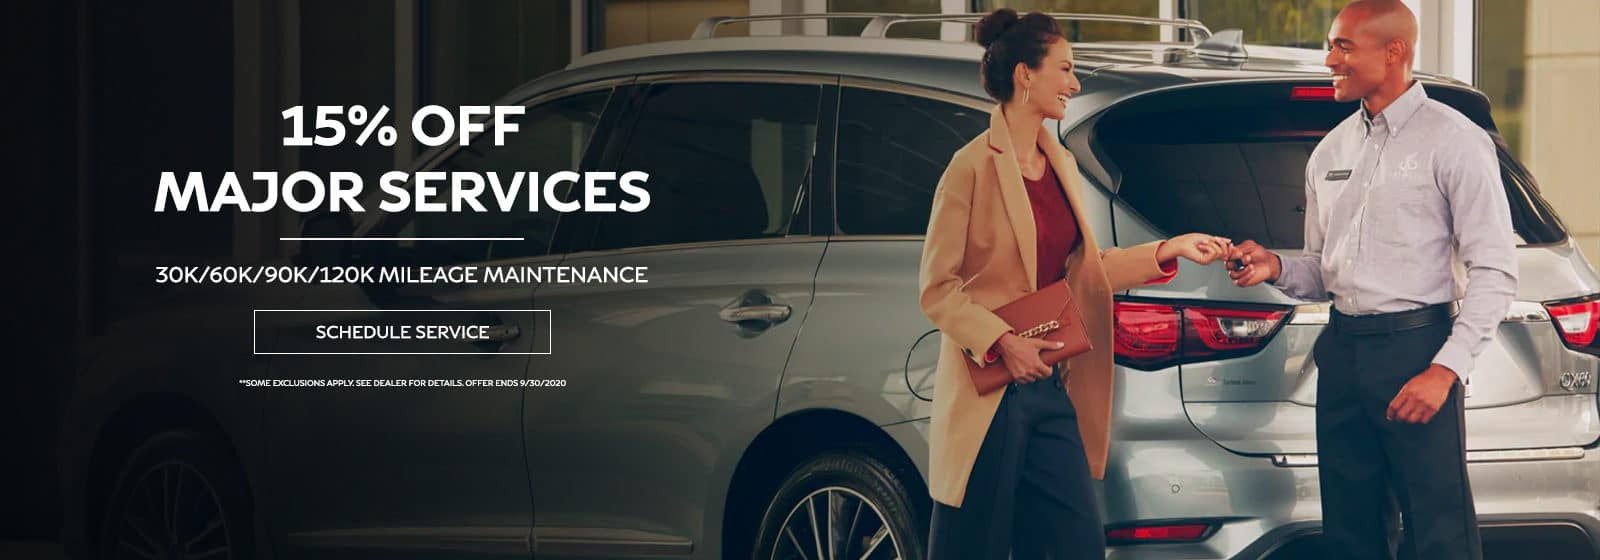 15% off Major Services